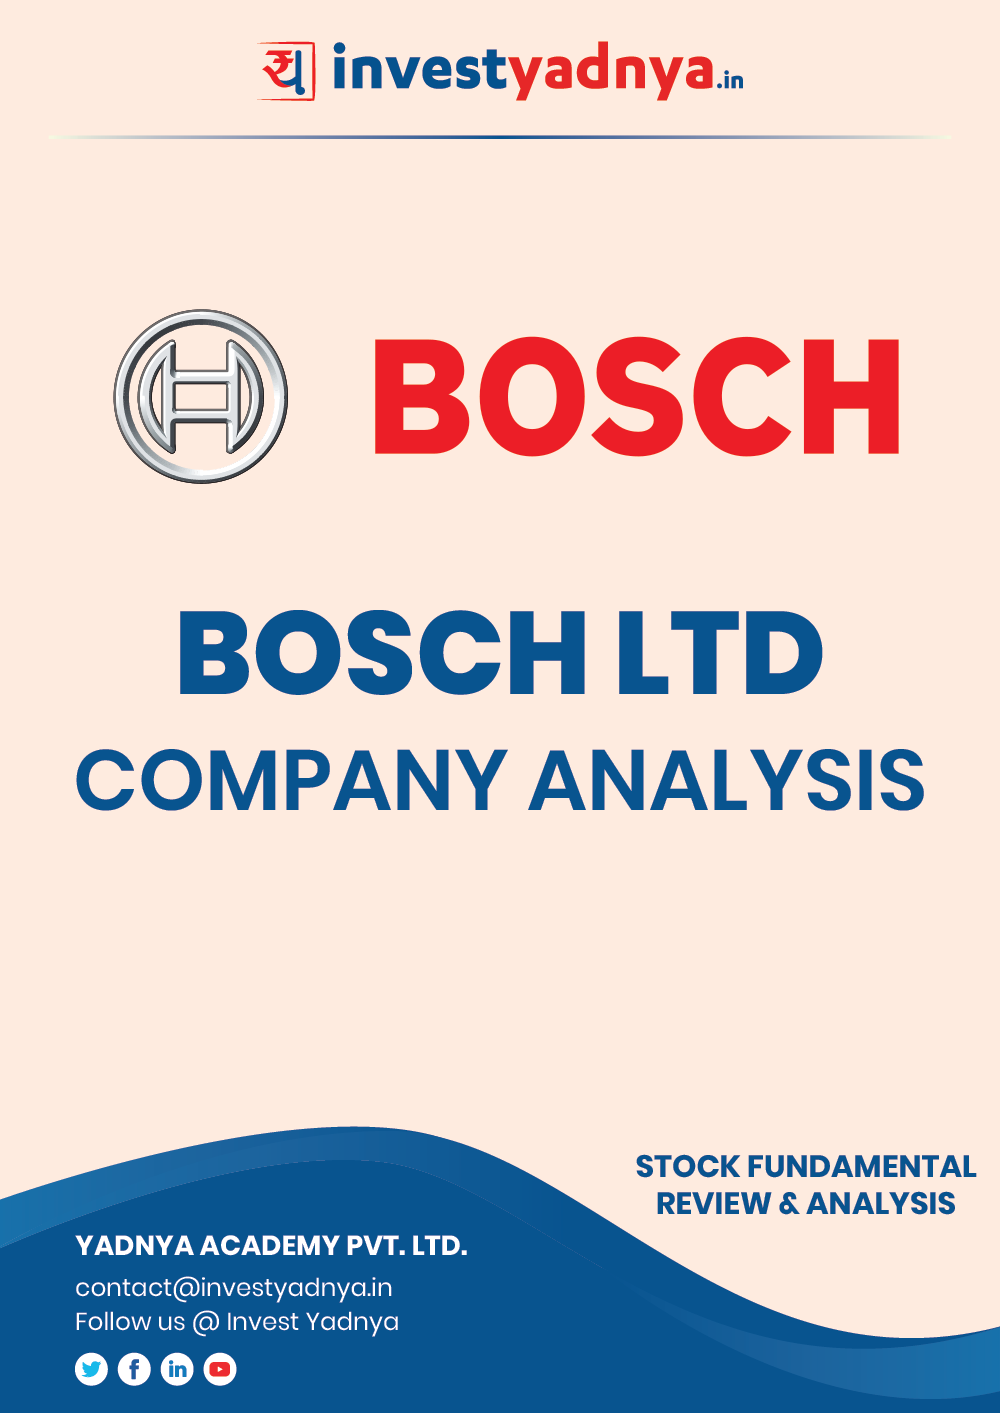 Bosch Limited - Company/Stock Review based on Q3 2020-21 and FY 2019-20 data. The ebook contains Fundamental Analysis of the company considering both Quantitative (Financial) and Qualitative Parameters. Bosch Ltd has presence in mobility solutions, consumer goods, industrial technology and energy and building technology.